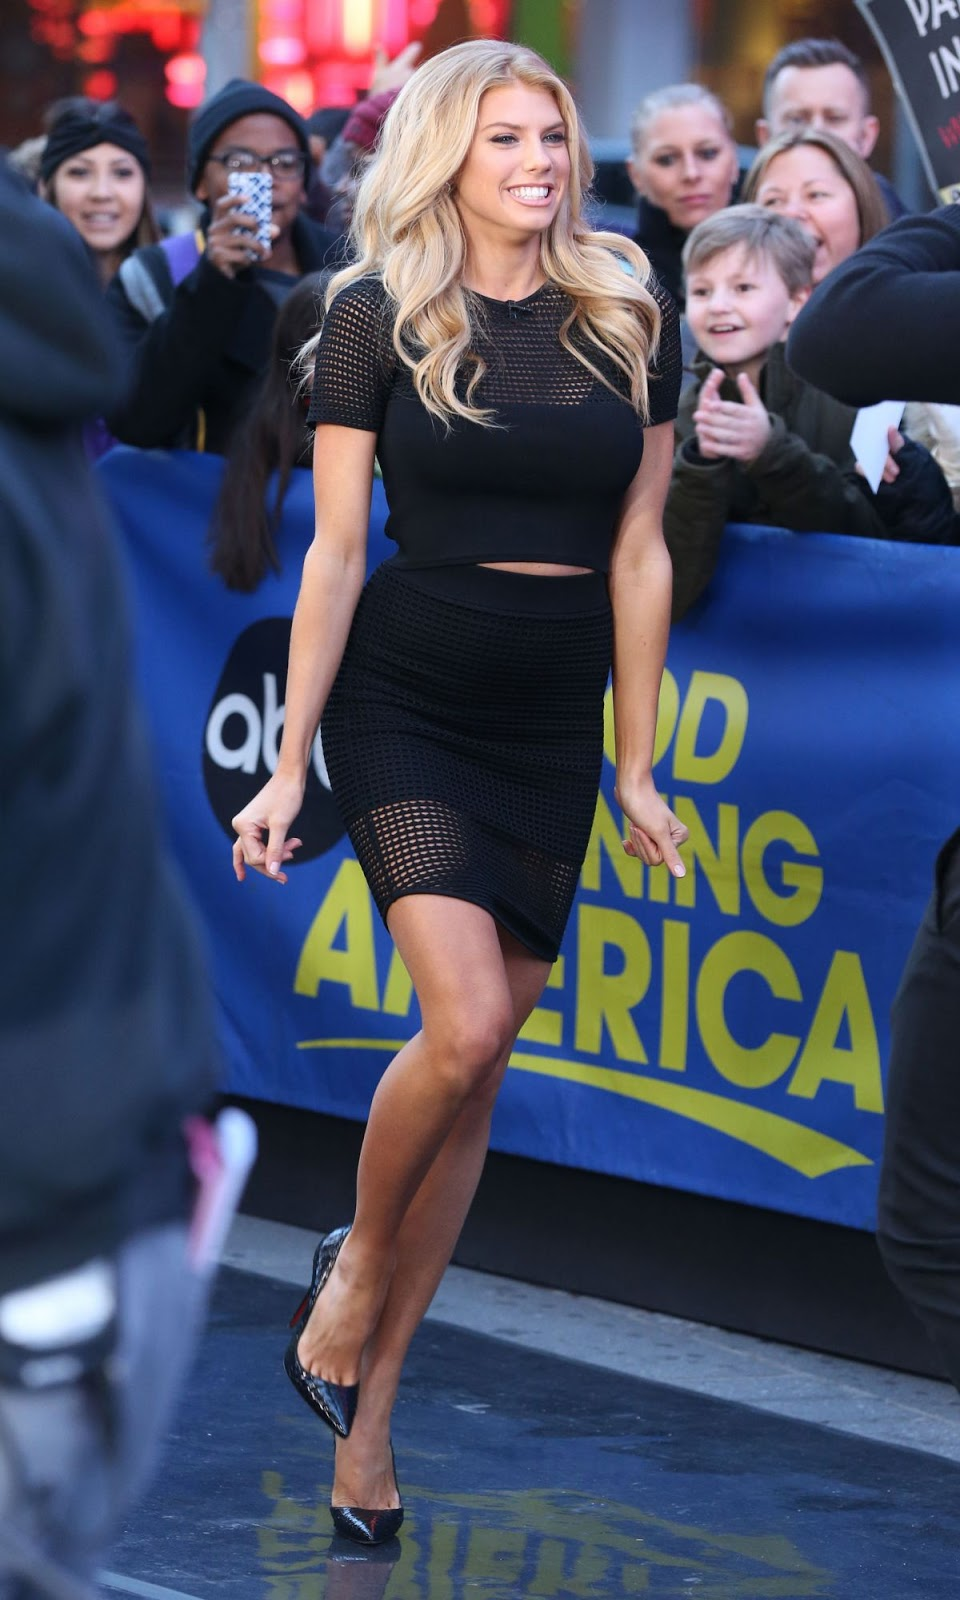 Full HQ Photos of Charlotte Mckinney in Black dress at Good Morning America